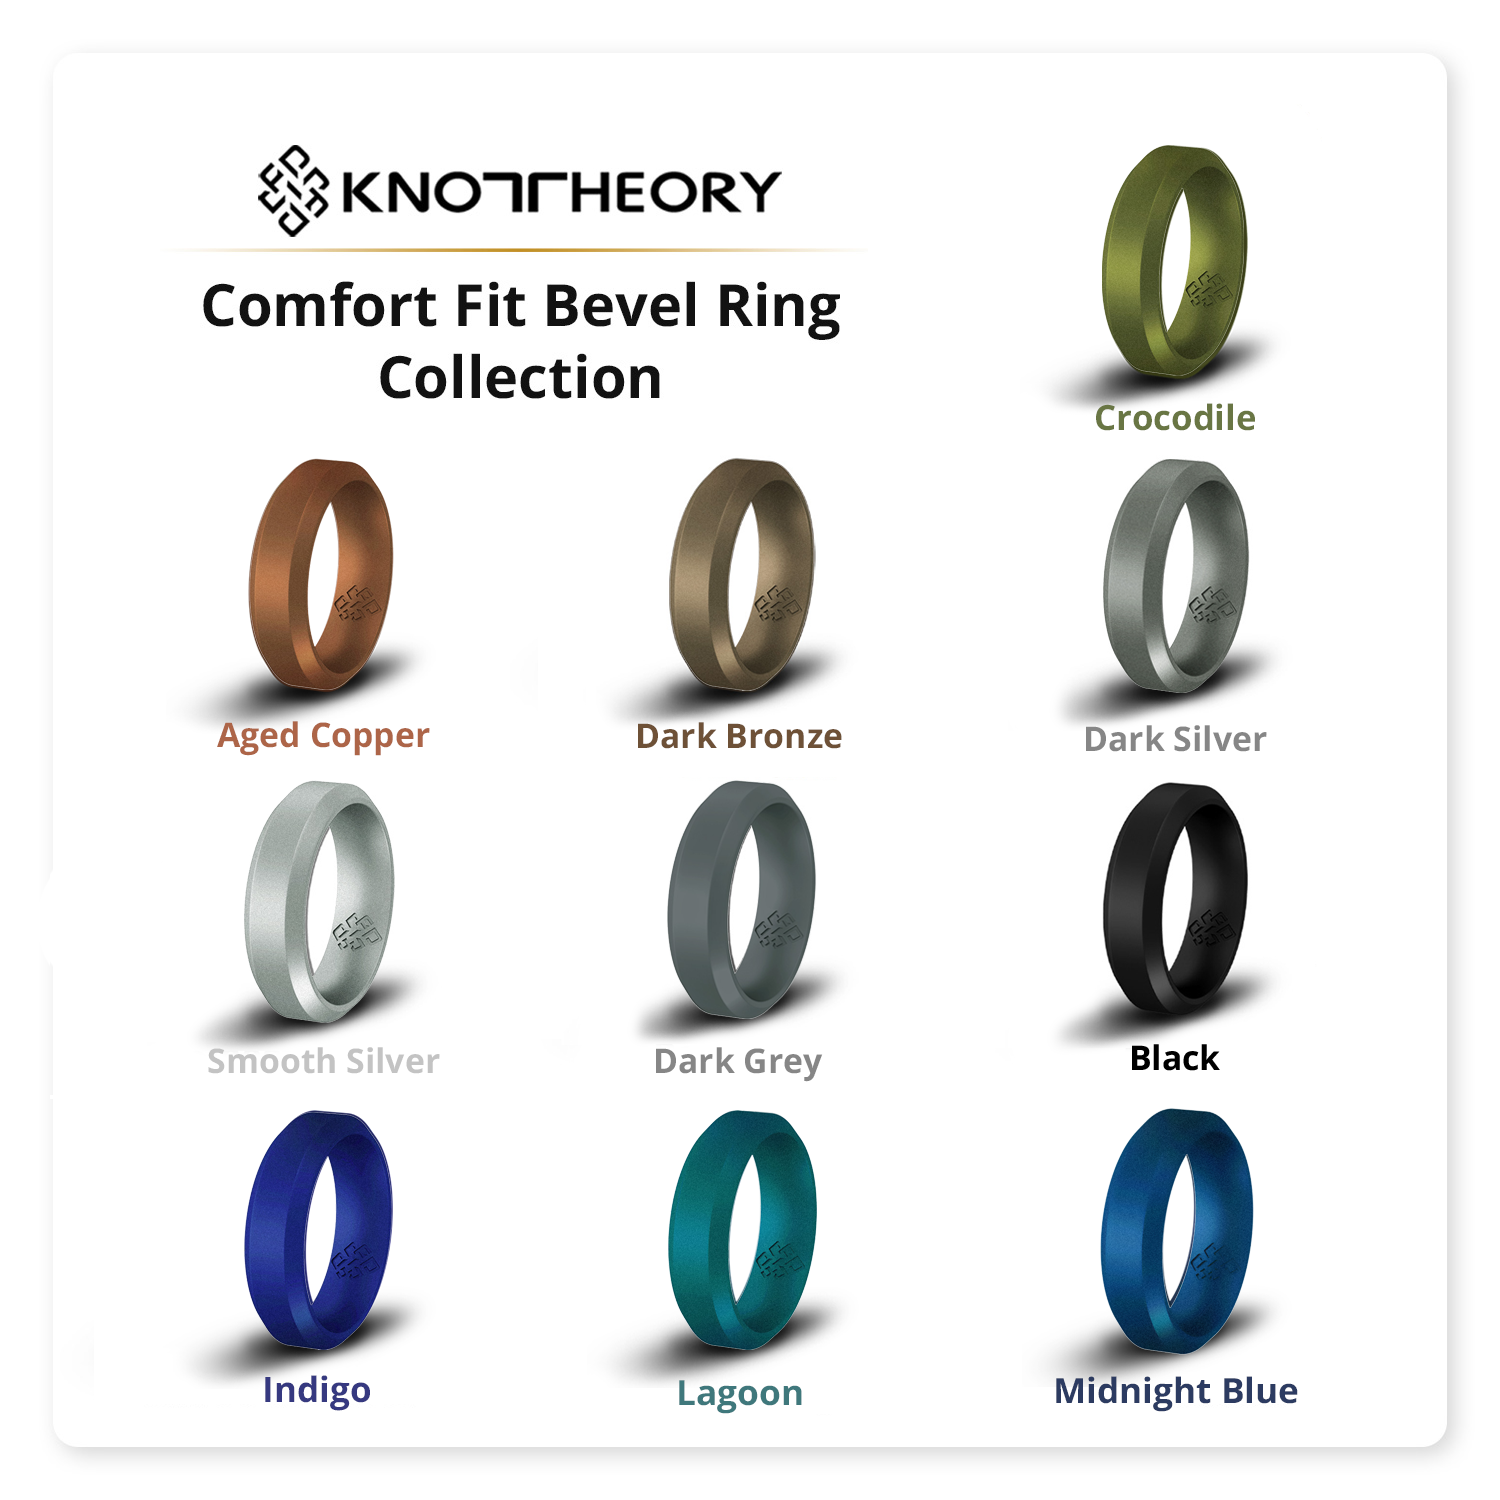 safe and comfortable silicone ring for people with active lifestyle or demanding job (e.g. crossfit, gym, youga, martial arts, policemen, firefigther, mechanic, electrician, hairdresser, musician, biker, skater, engineer)